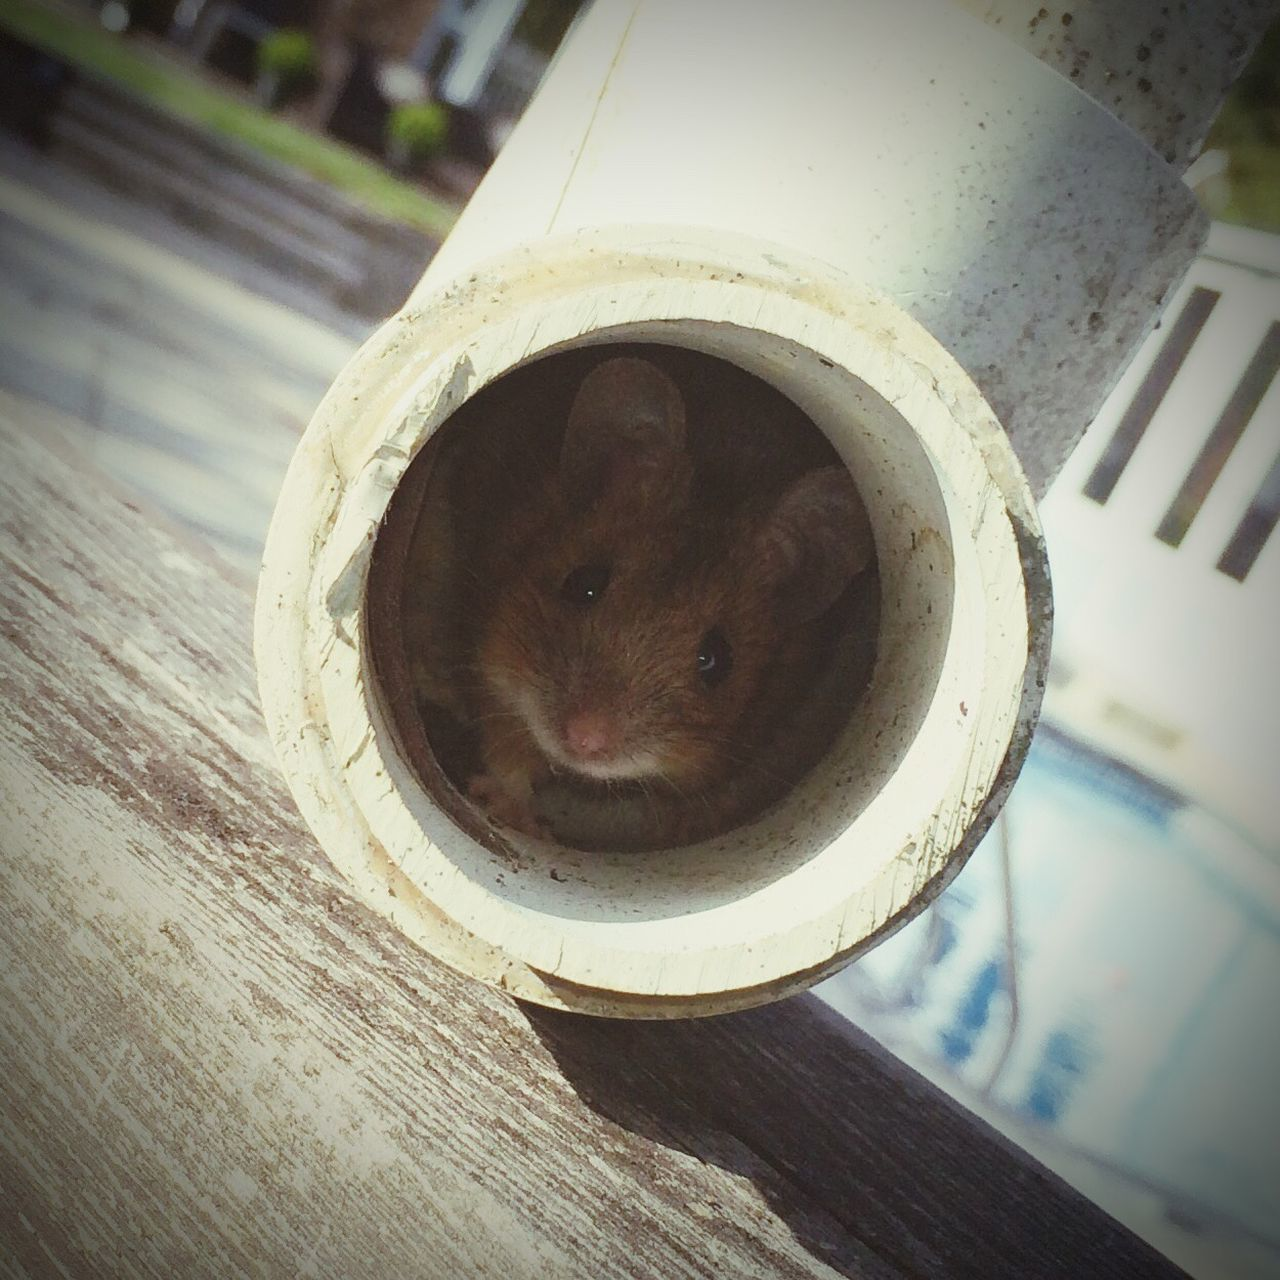 Mouse Field Mouse Hide And Seek Pipe Mouse In Pipe One Animal Close-up Looking At Camera Peeking Focus On Foreground Country Life English Countryside Cute